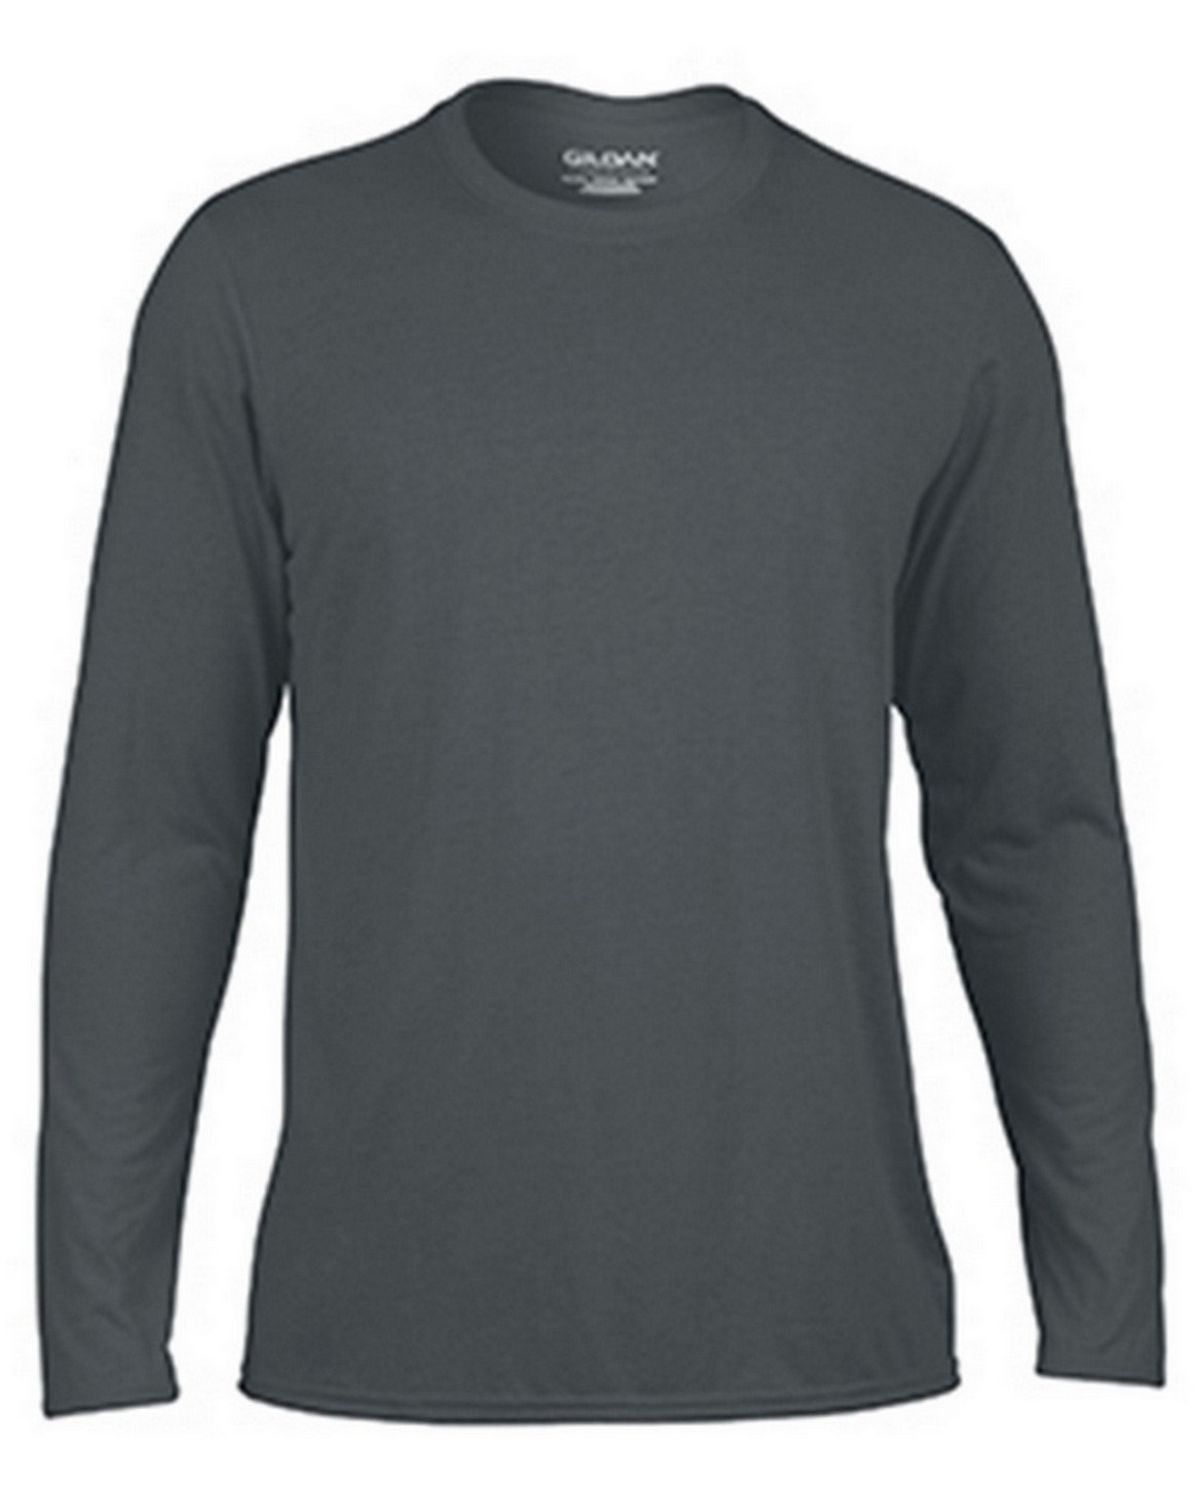 Gildan G42400 Adult Long Sleeve Tee - Charcoal - 3X G42400